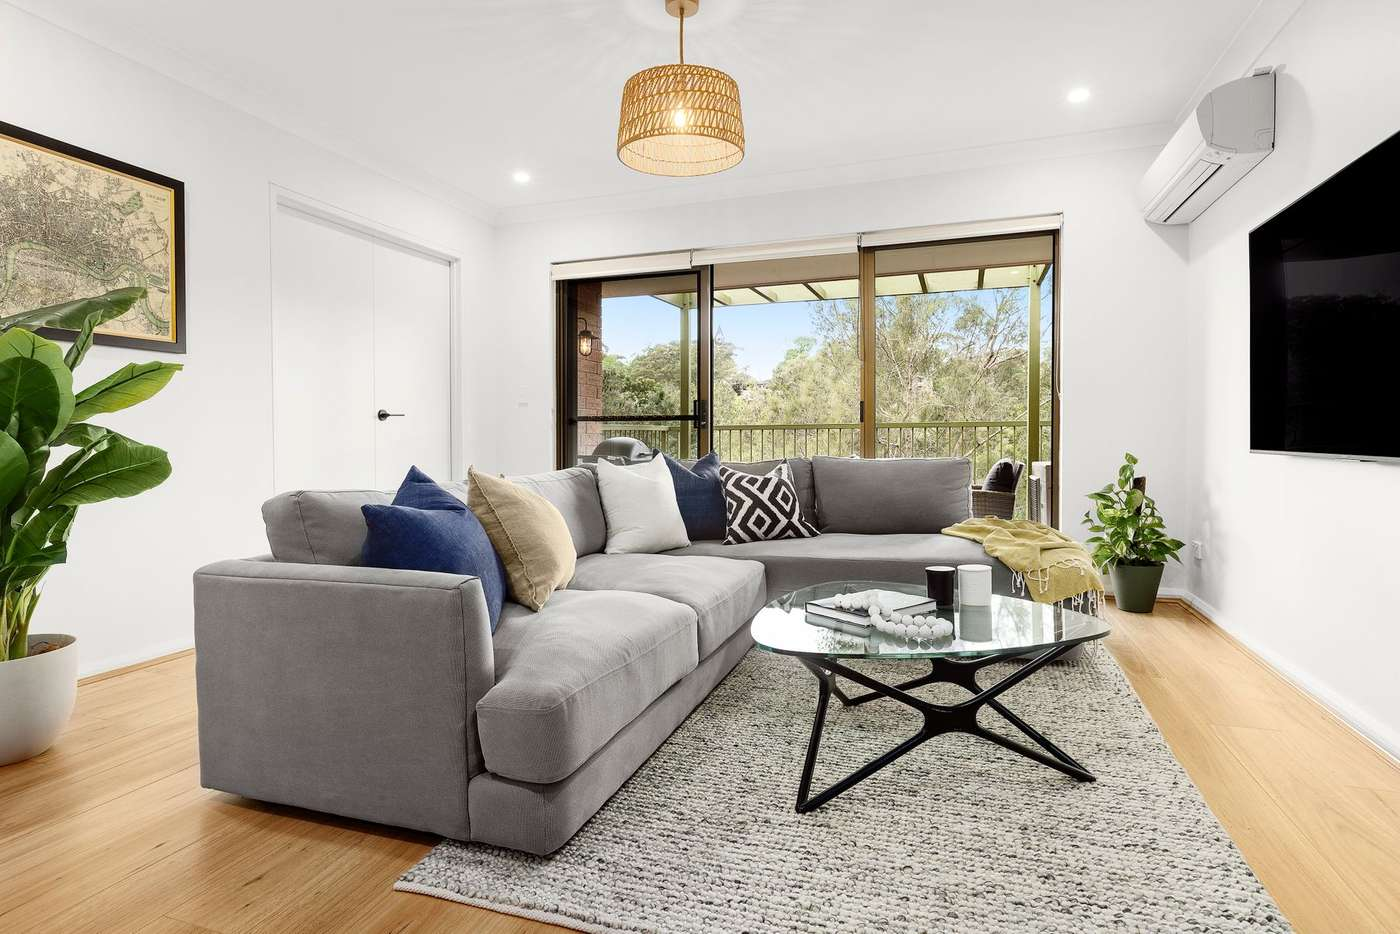 Main view of Homely apartment listing, 157/25 Best Street, Lane Cove NSW 2066